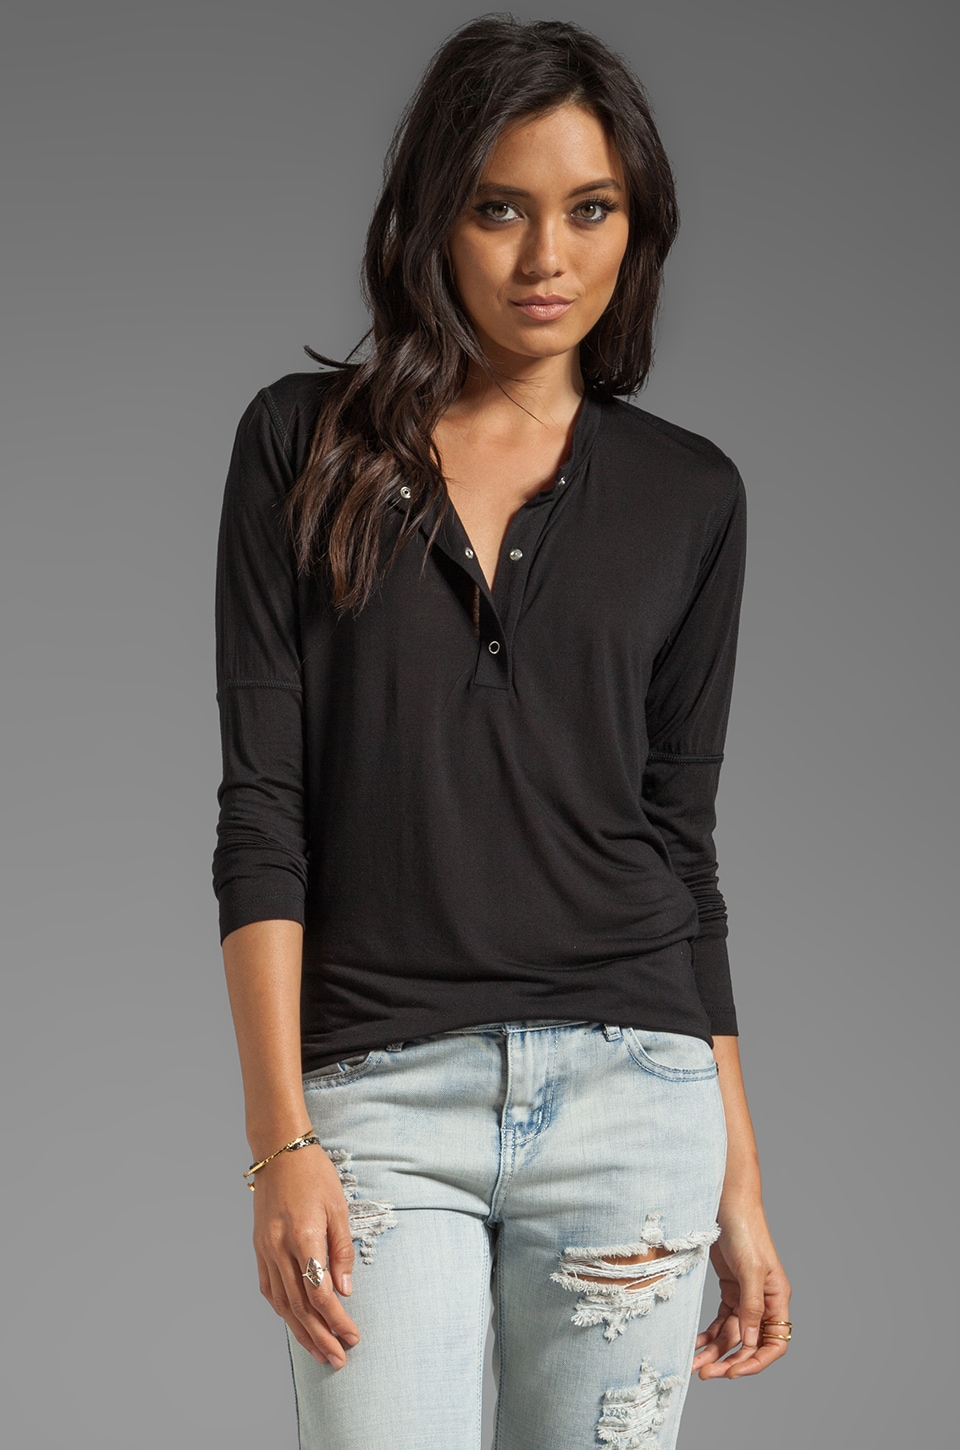 Pencey Standard Sprint Henley in Black